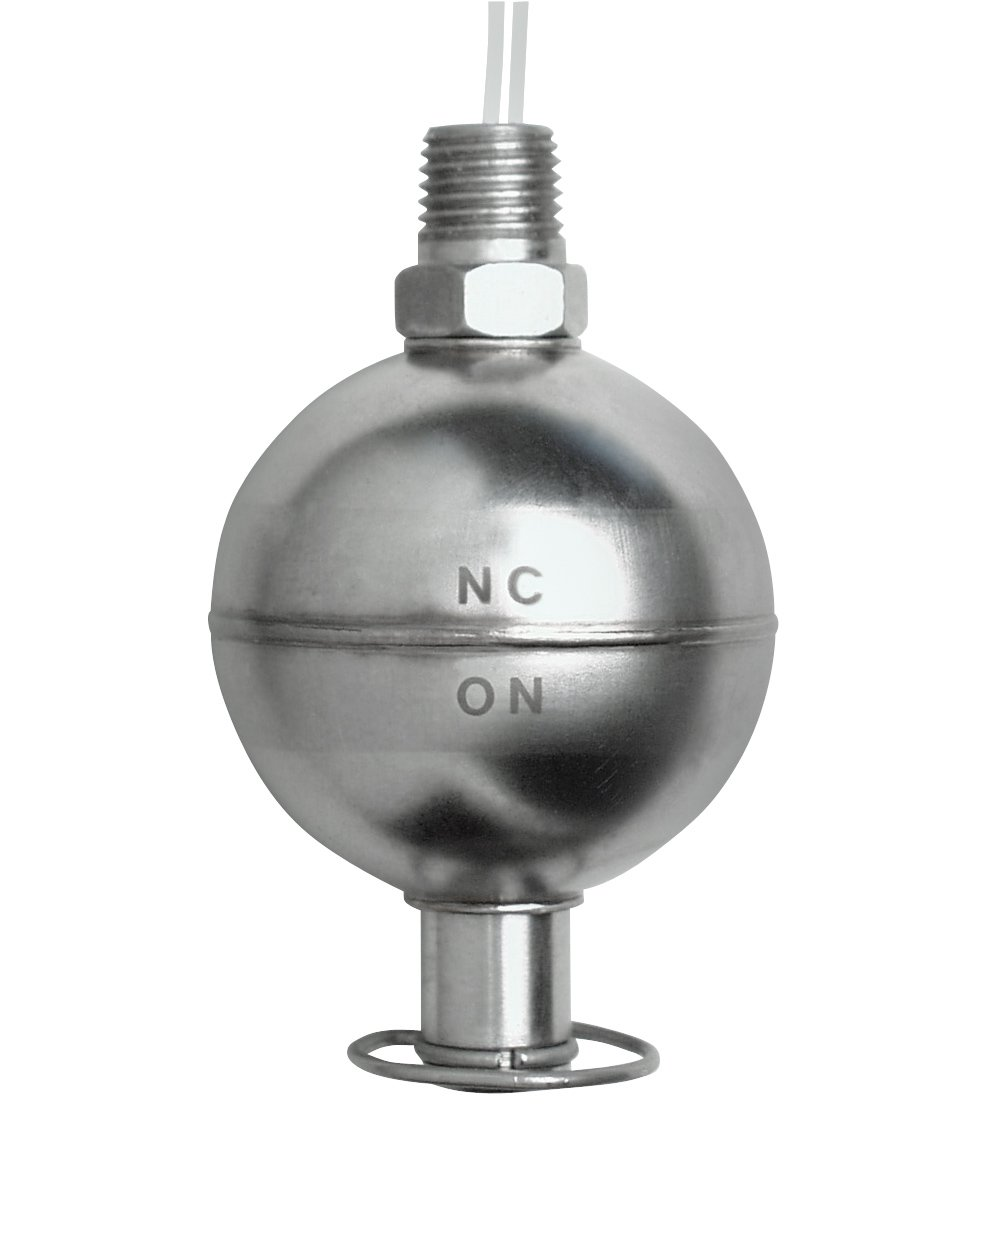 Madison M5600-PR Stainless Steel Full Size Liquid Level Switch, 100 VA SPST, 1/4 NPT Male, 500 psig Pressure